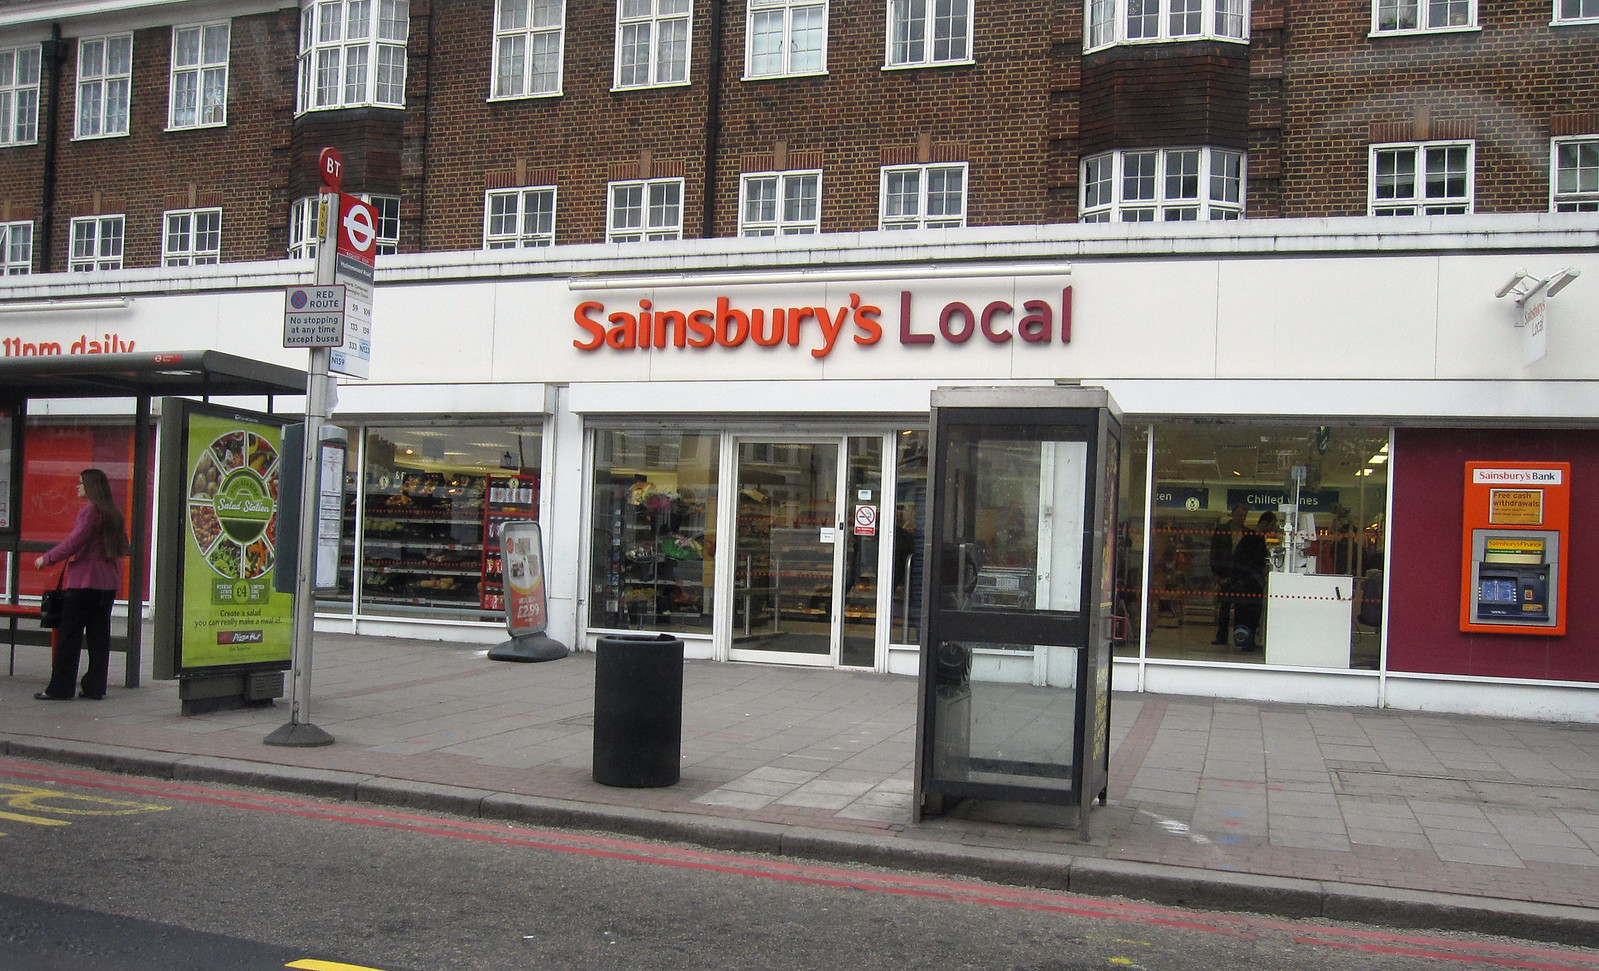 London 488 Sainsbury's Local